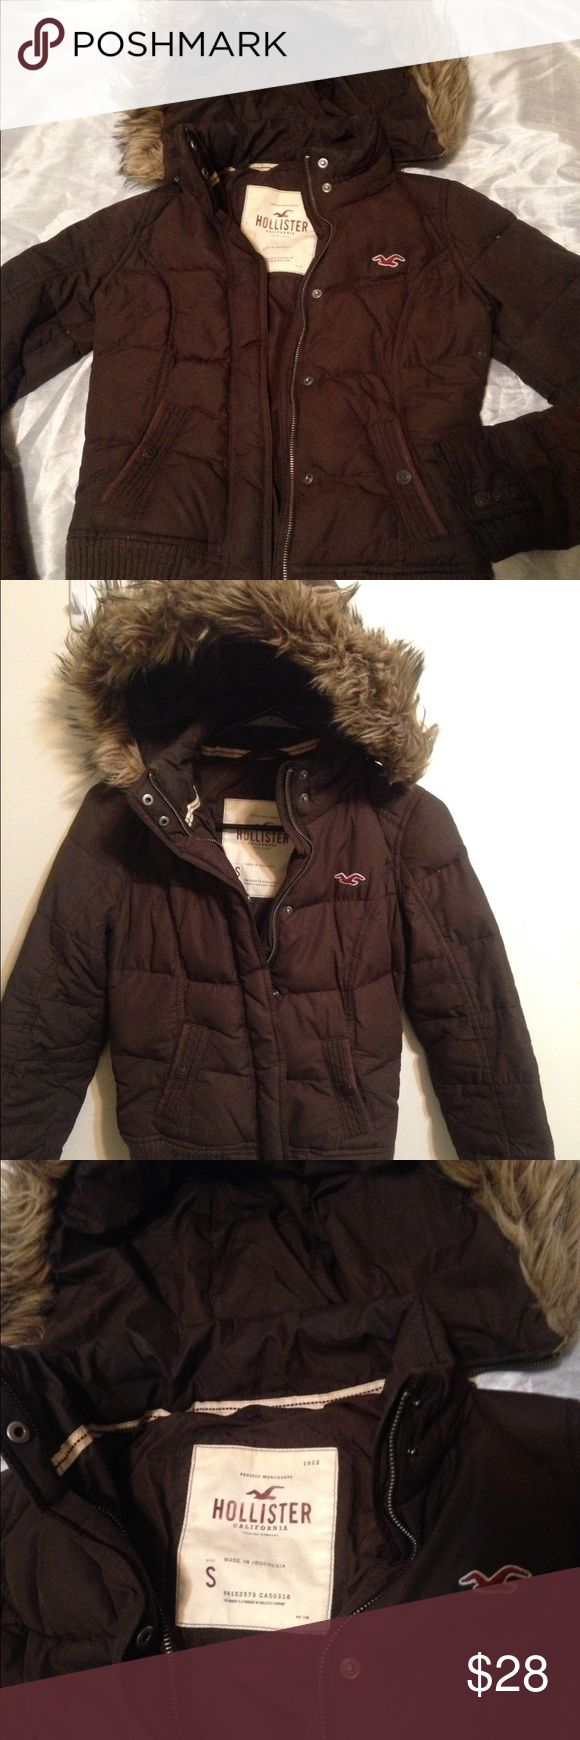 Women's Hollister Puffer Jacket Coat with Fur Hood Super cute Hollister jacket with removable hood with zipper. Super comfortable. New without tags and no zipper as you can see in picture 4 but you can close it with the metal buttons. Great for winter and unbeatable price‼️ Hollister Jackets & Coats Puffers